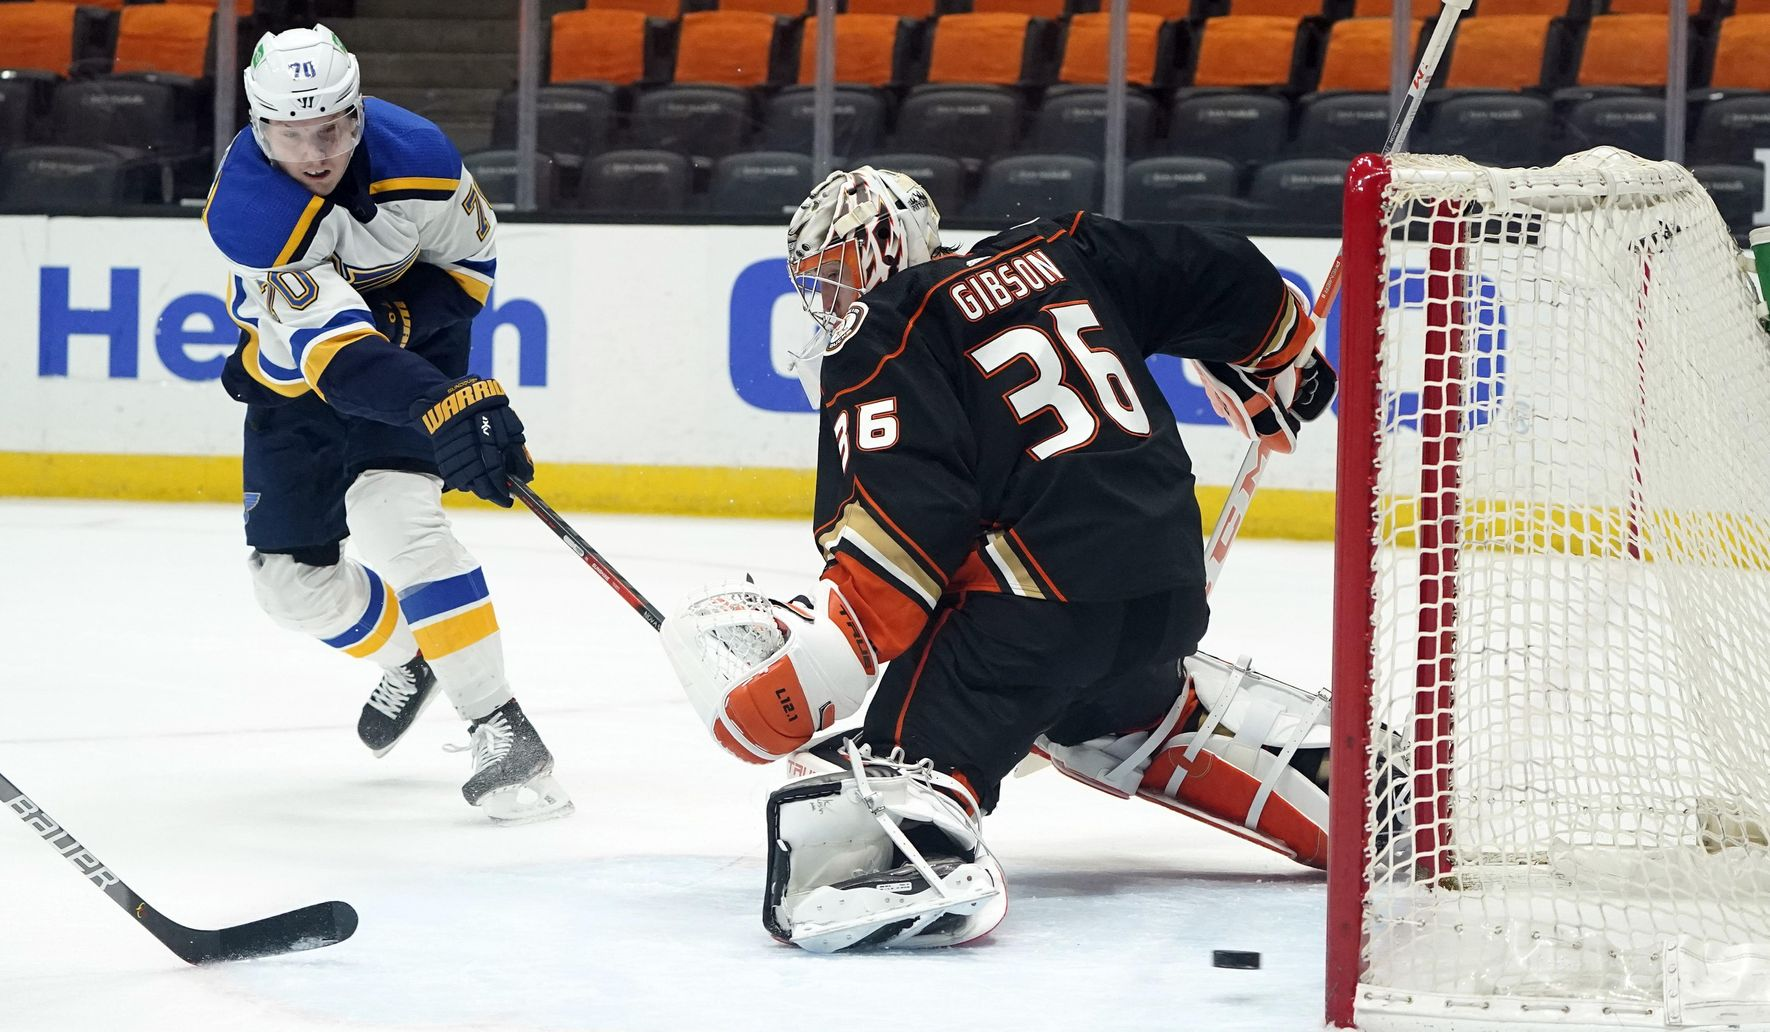 Blues_ducks_hockey_75027_c0-189-4515-2821_s1770x1032